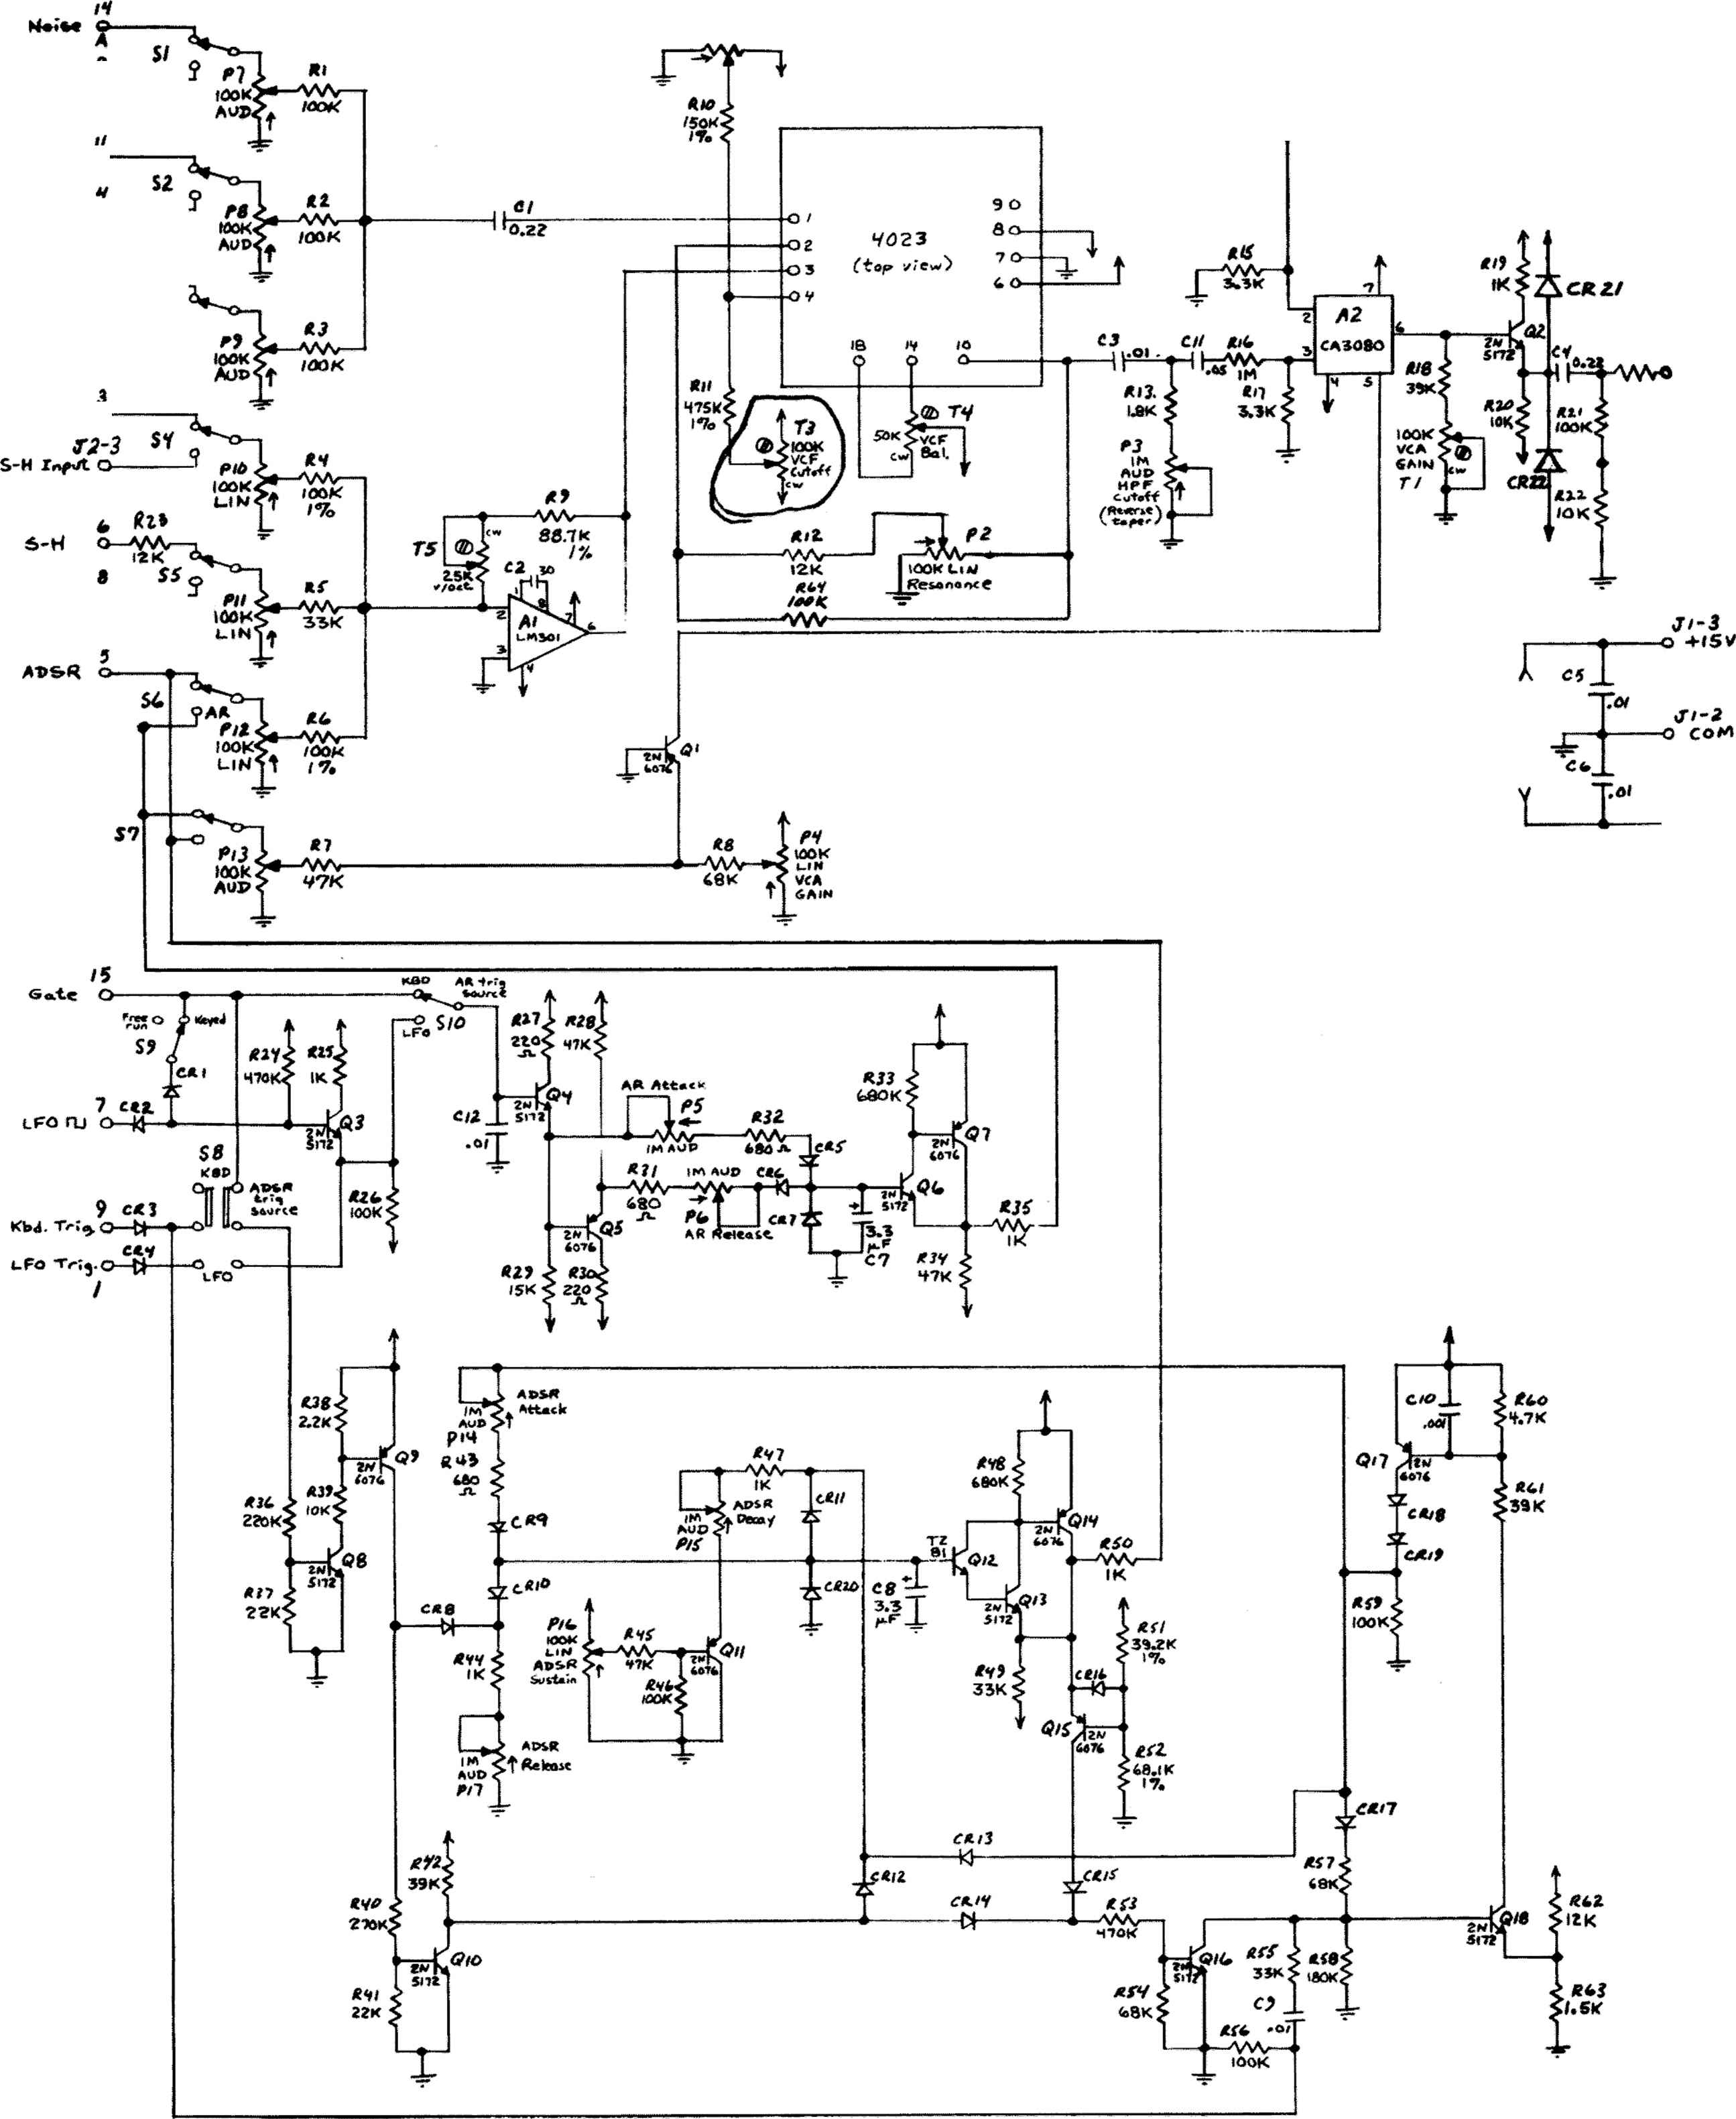 Arp Odyssey Model 2800 Schematic Board Bl on Hammond Organ Schematic Diagrams